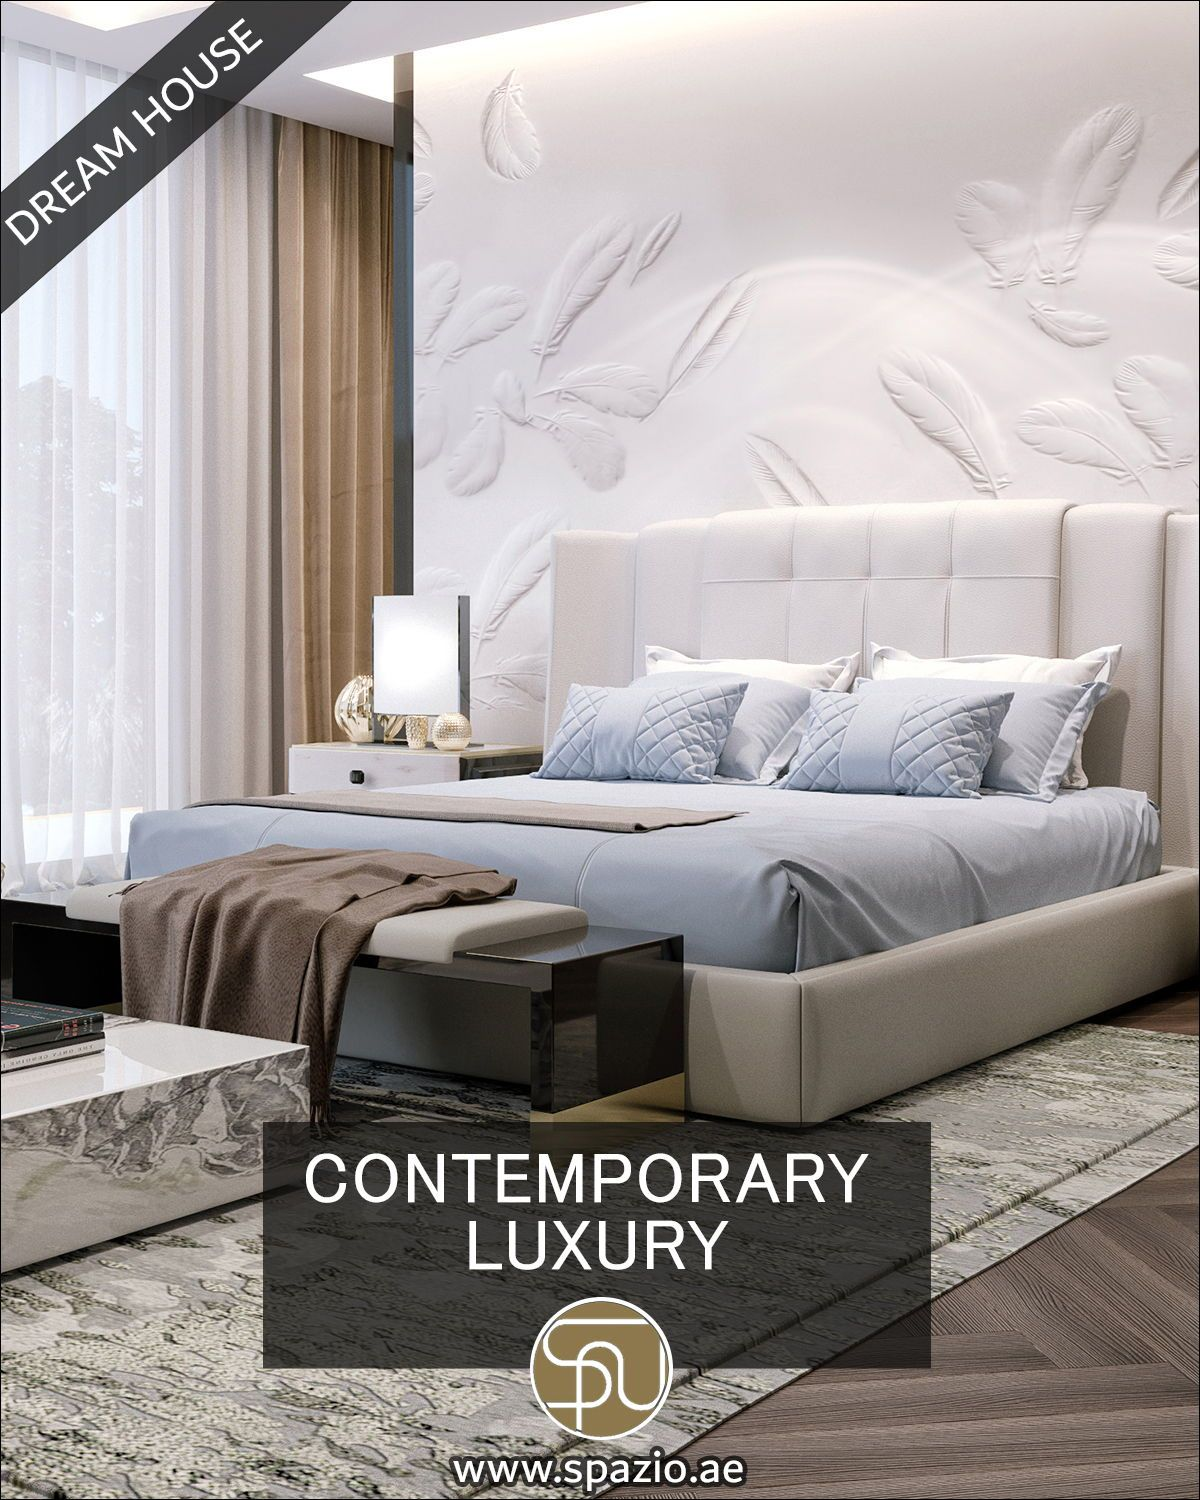 Classy large bedroom interior video for your inspiration in 8